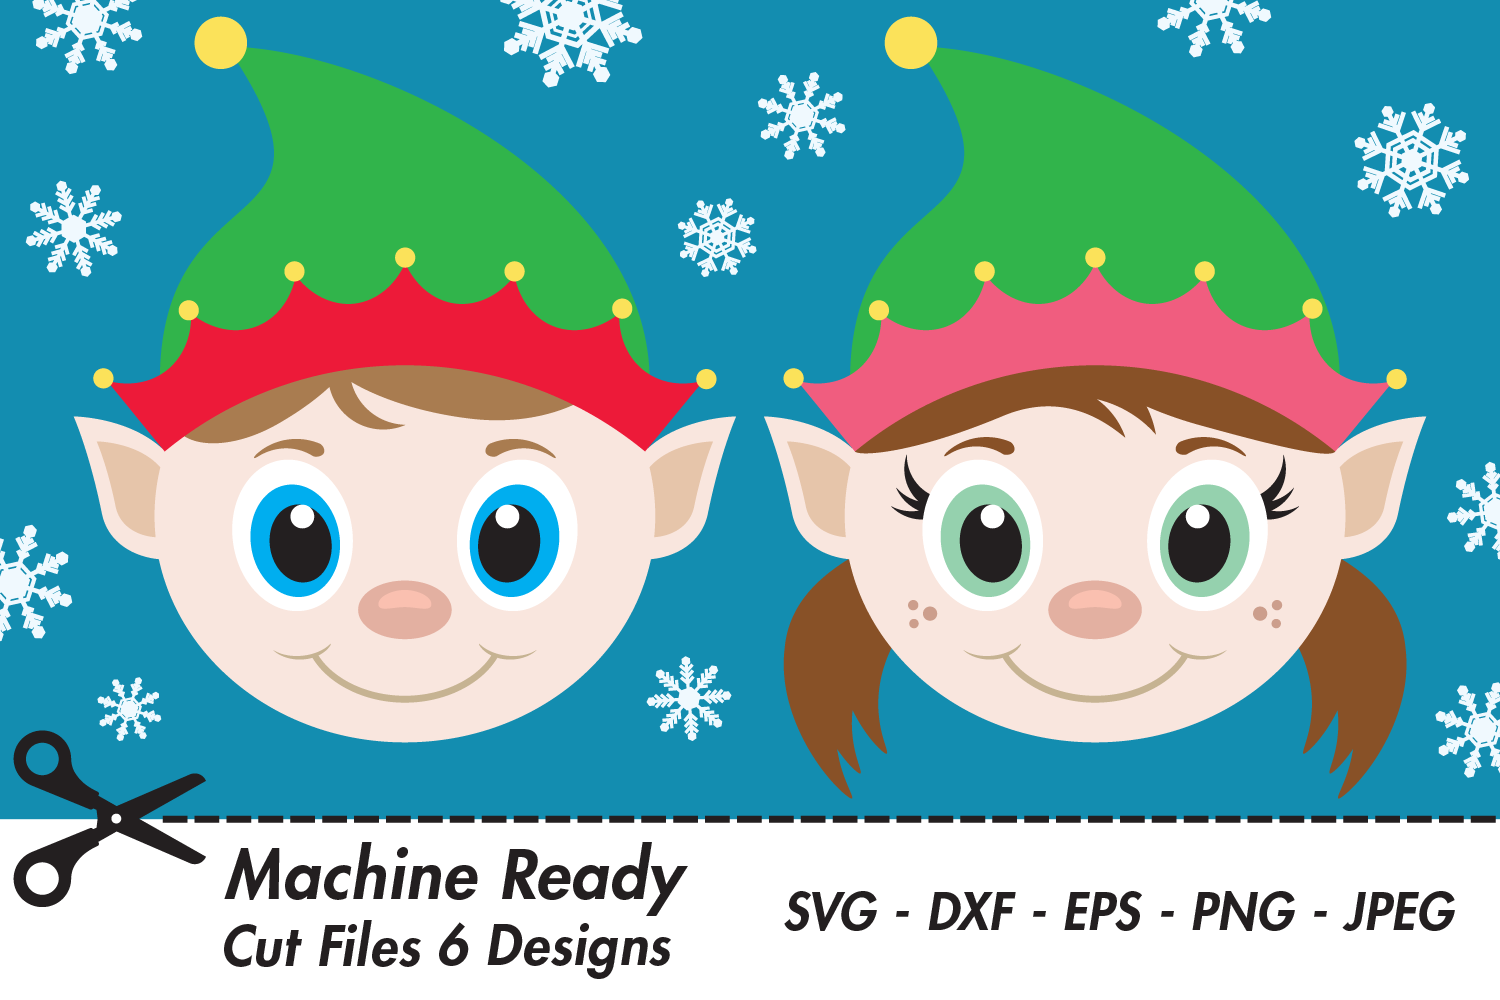 Download Free Cute Elf Faces With Snowflakes Graphic By Captaincreative for Cricut Explore, Silhouette and other cutting machines.